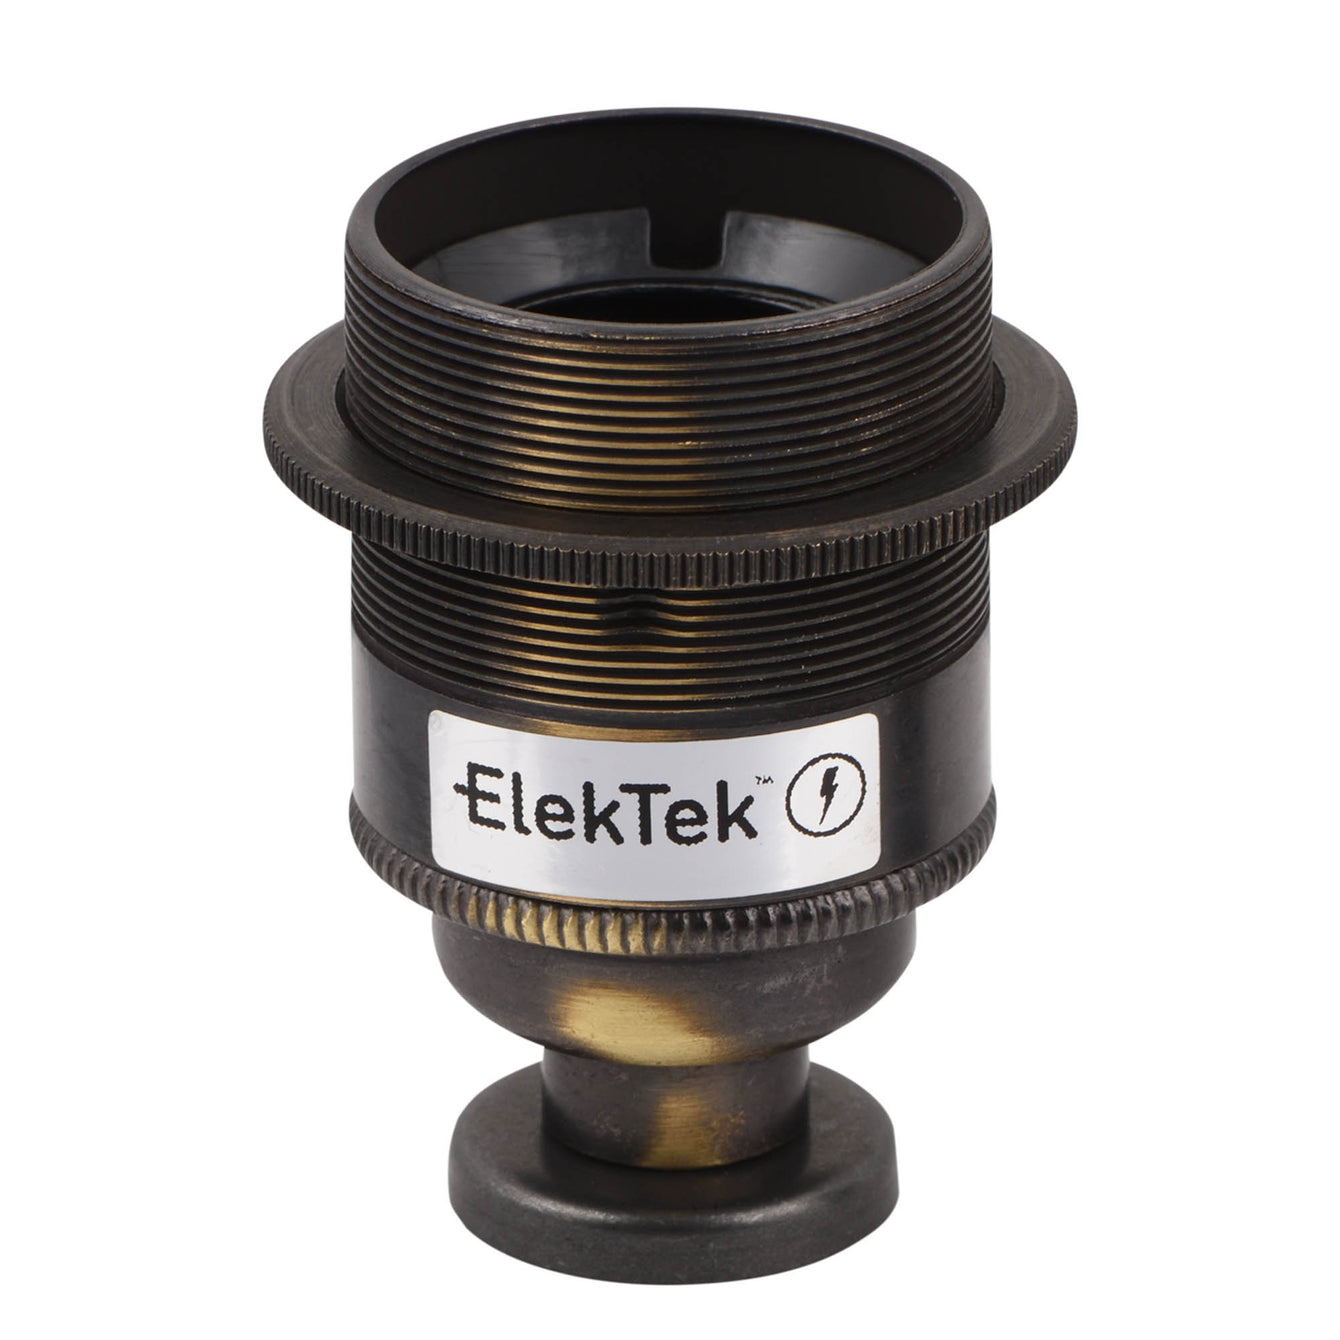 ElekTek ES Edison Screw E27 Lamp Holder Shade Ring With Back Plate Cover and Screws Brass and Matched Cover - Buy It Better Bronze